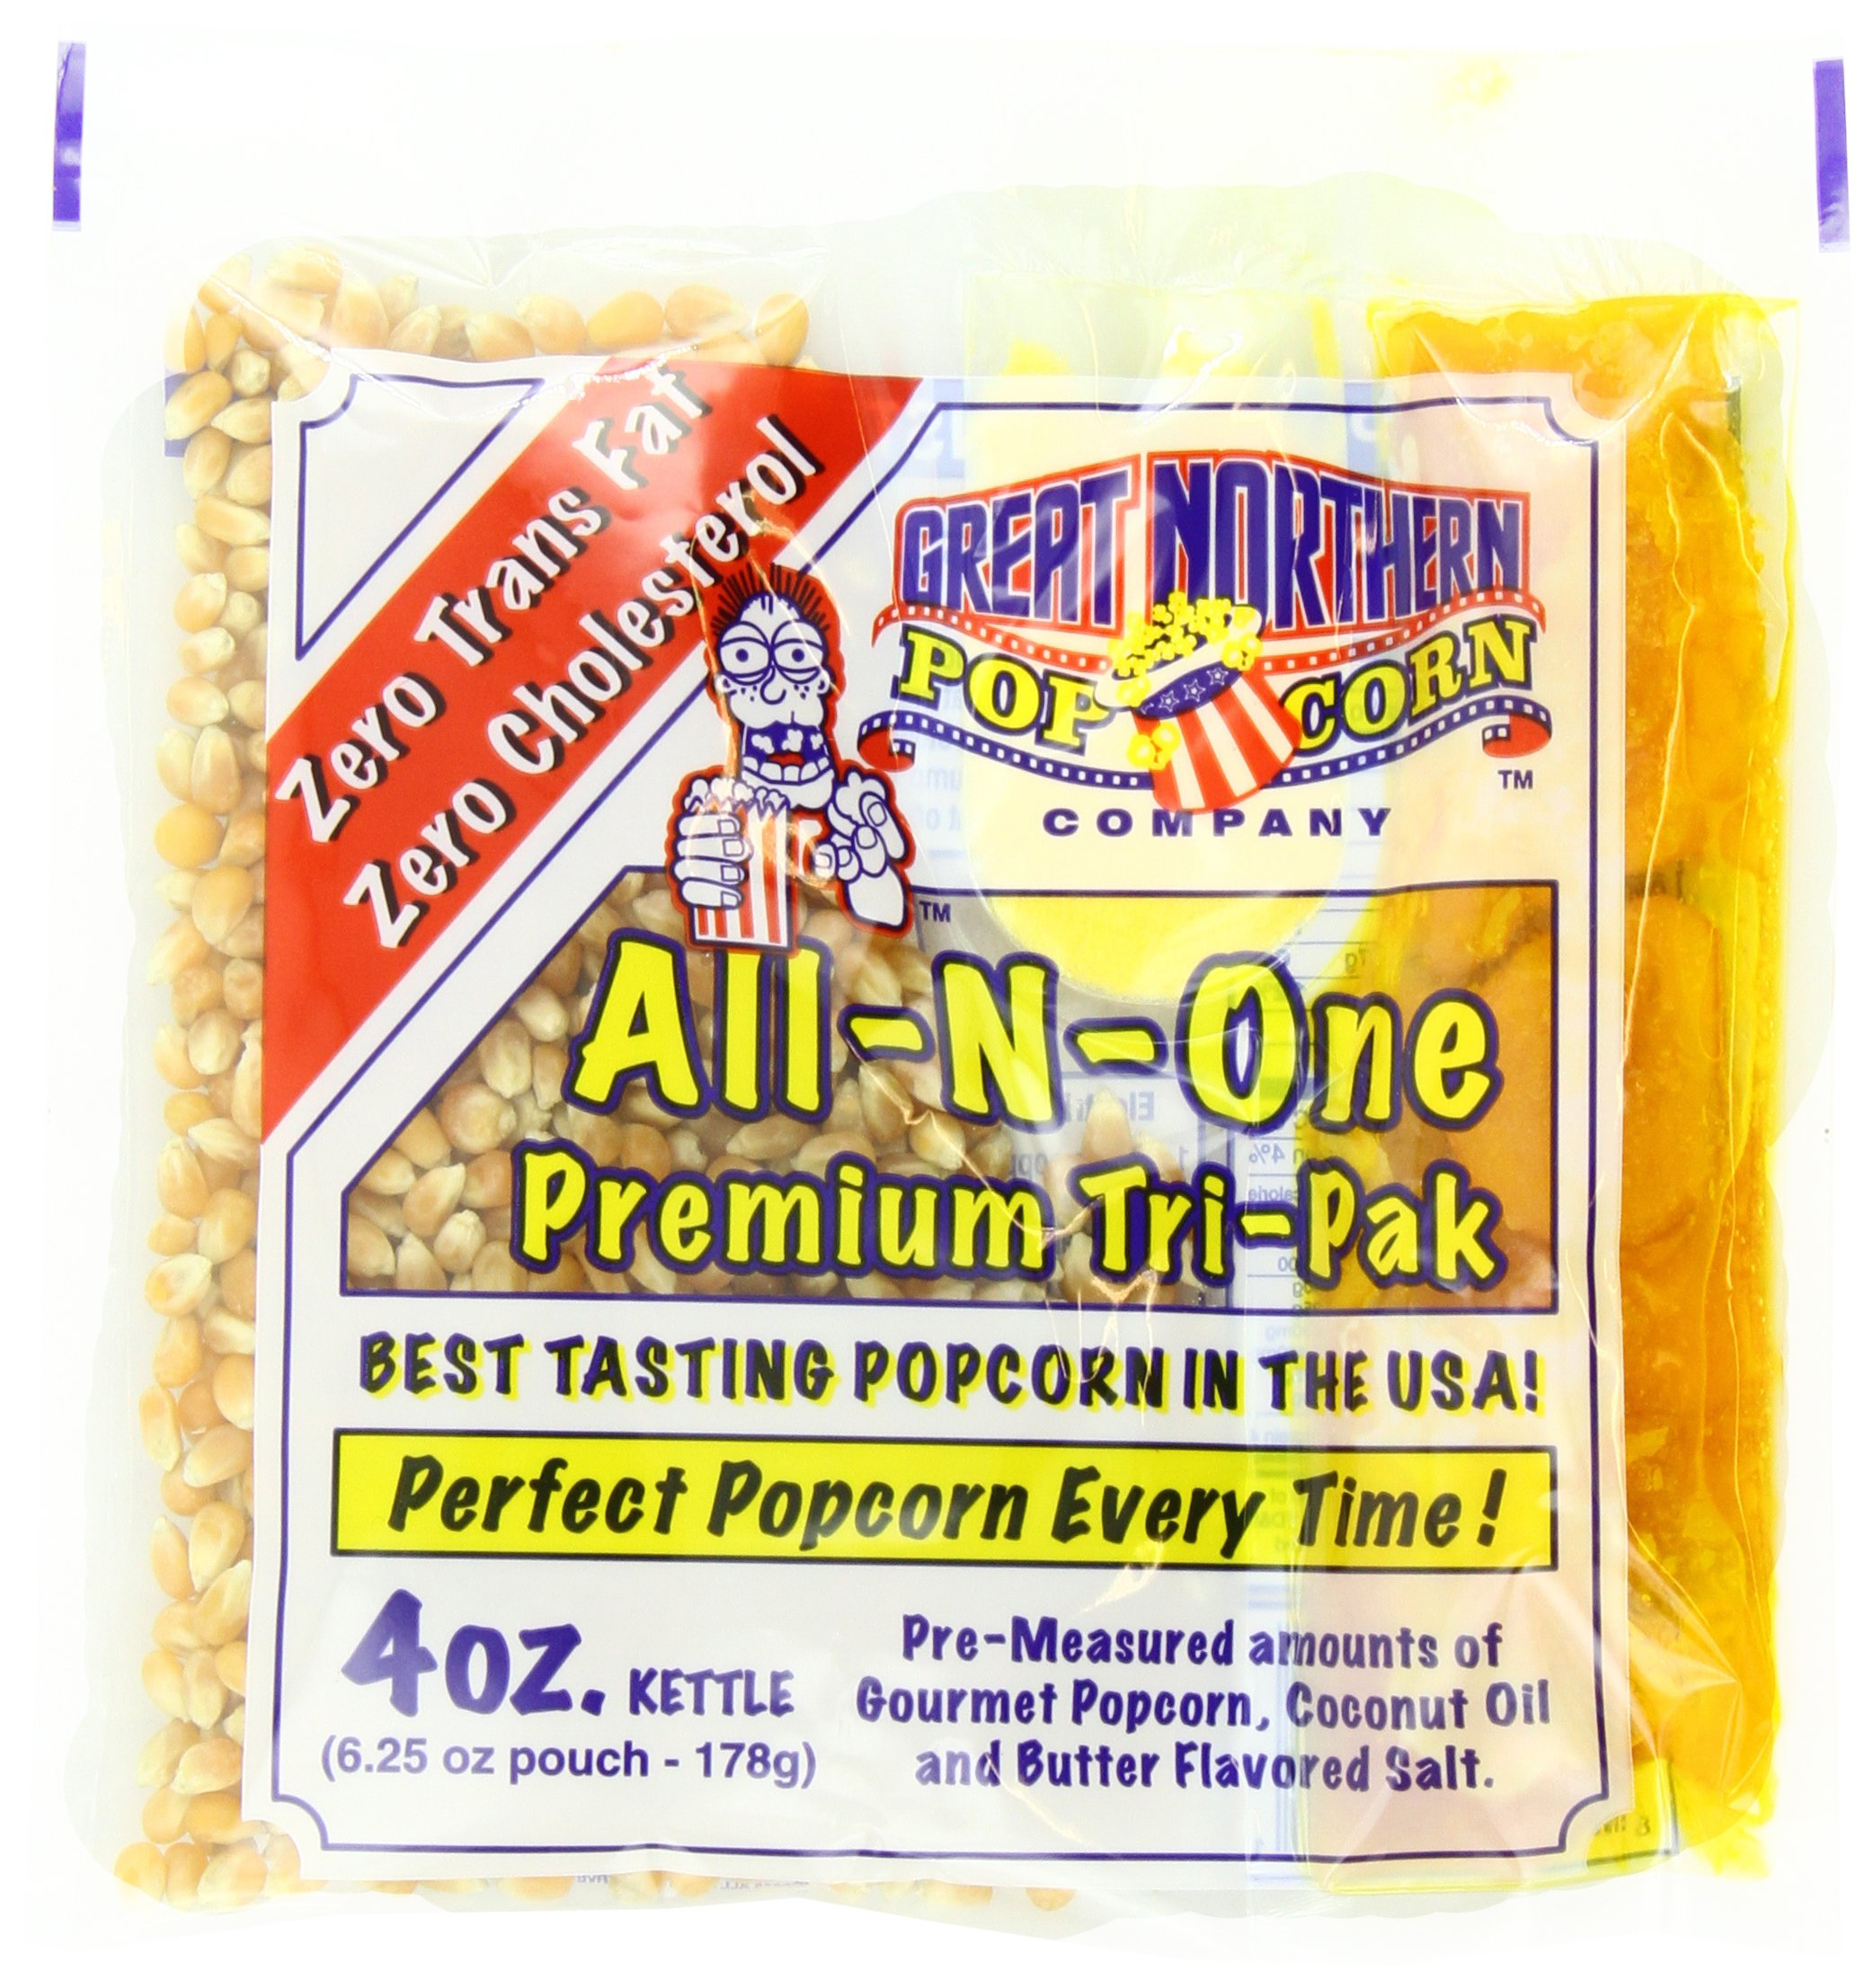 4100 Great Northern Popcorn 4 Ounce Premium Popcorn Portion Packs, Case of 24 by Great Northern Popcorn Company